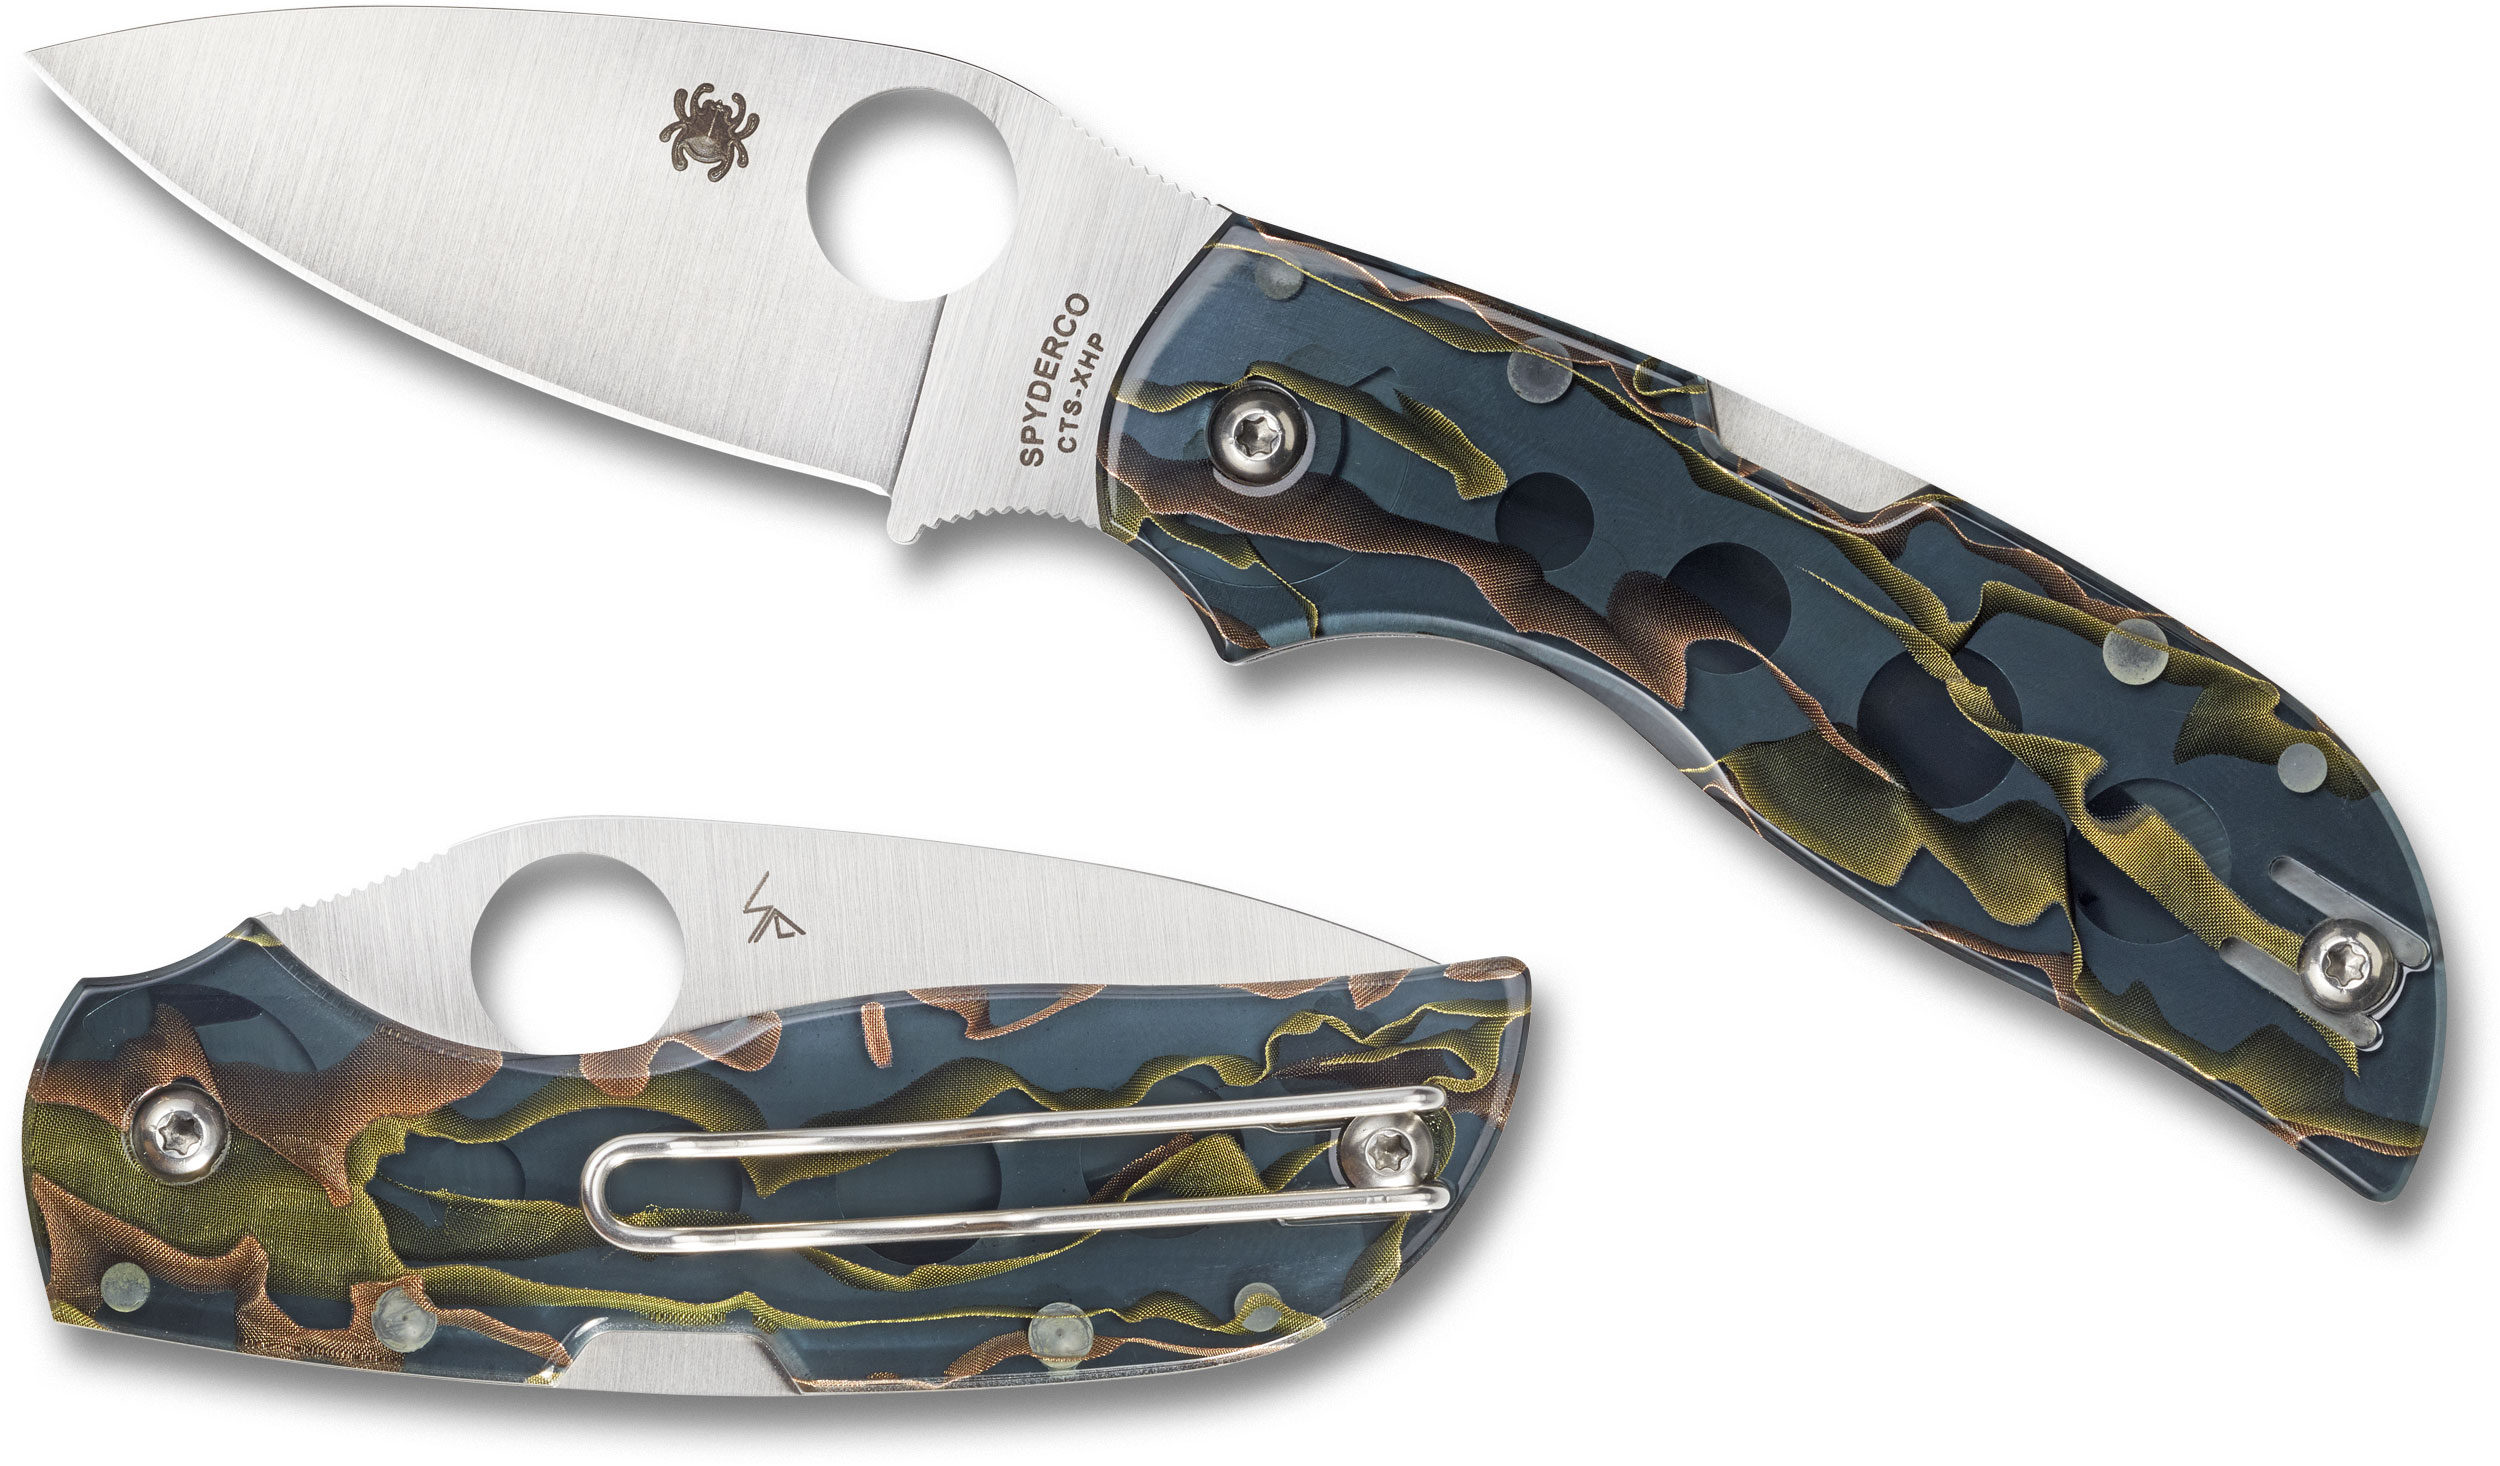 Spyderco Chaparral Folding Knife 2.8 inch CTS XHP Satin Plain Blade, Raffir Noble Handles (Coloration and Pattern May Vary)